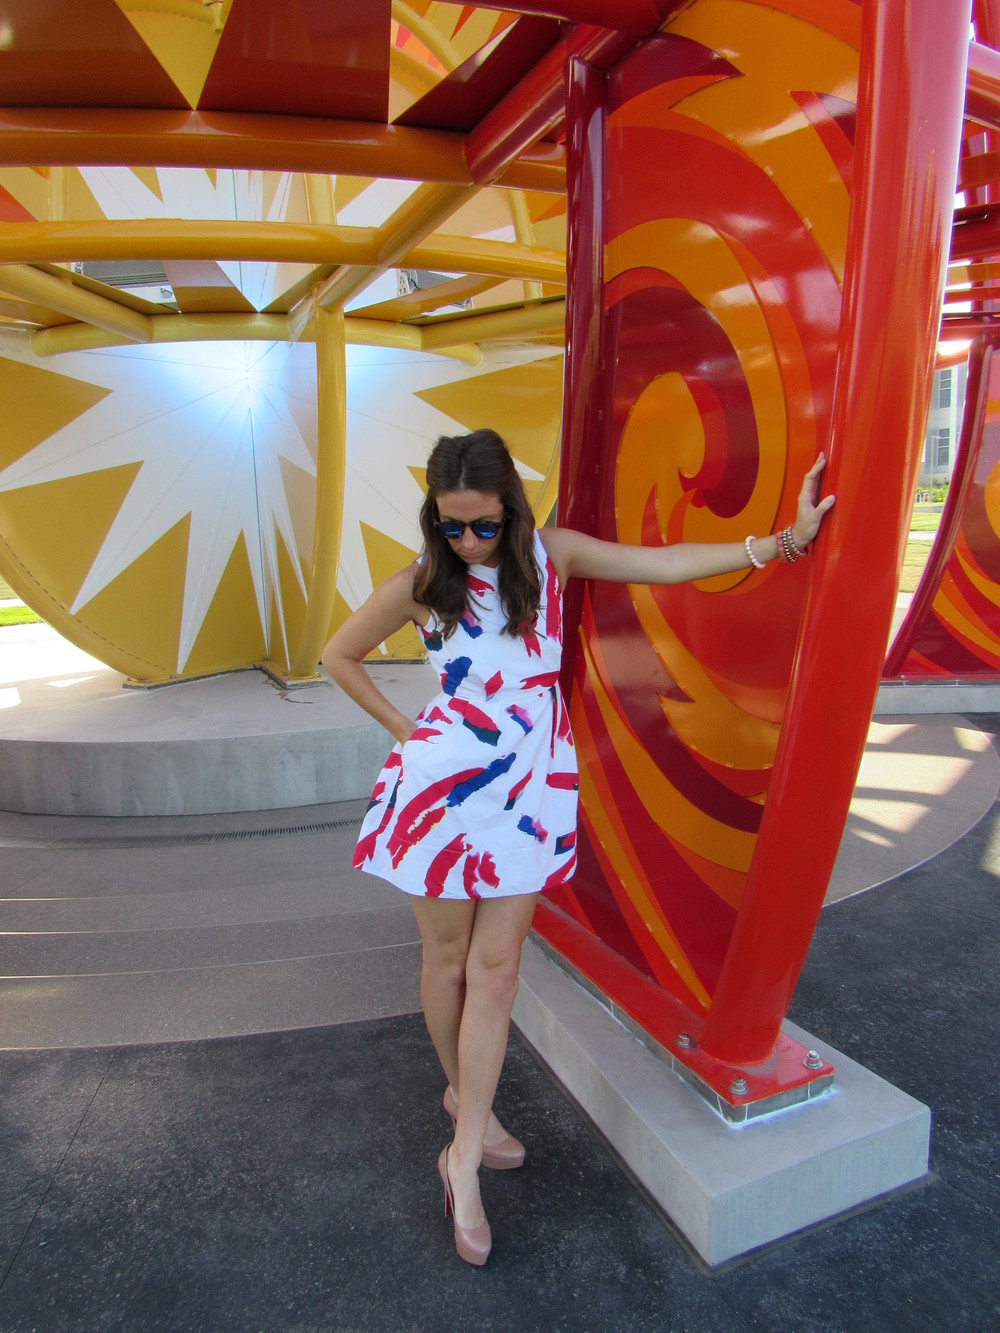 Dress: gap, similar  here . Shoes: Christian Louboutin, found  here . Sunnies: Illesteva, found  here .